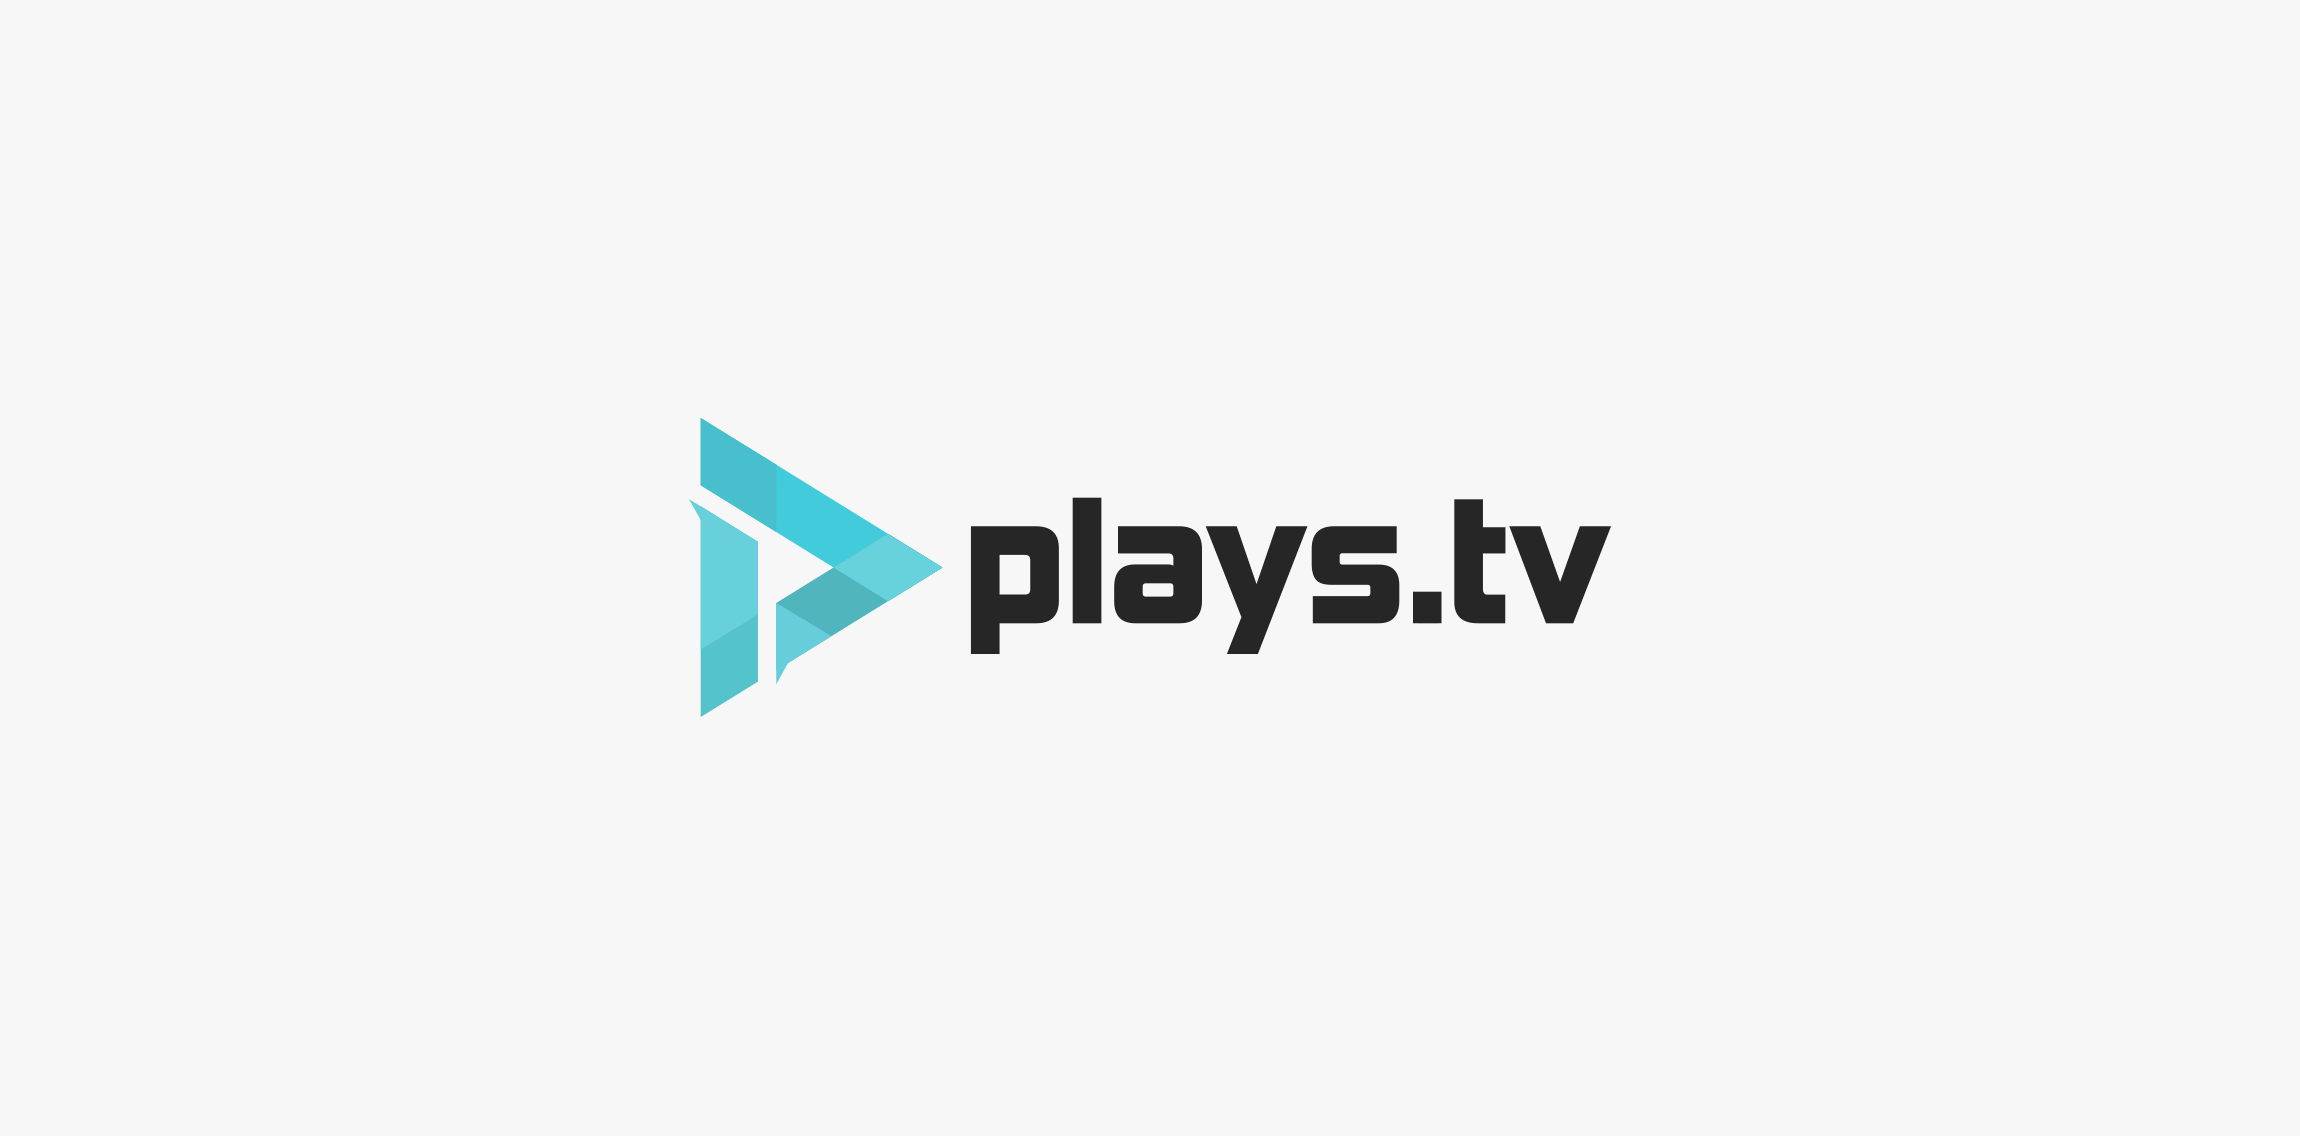 plays.tv